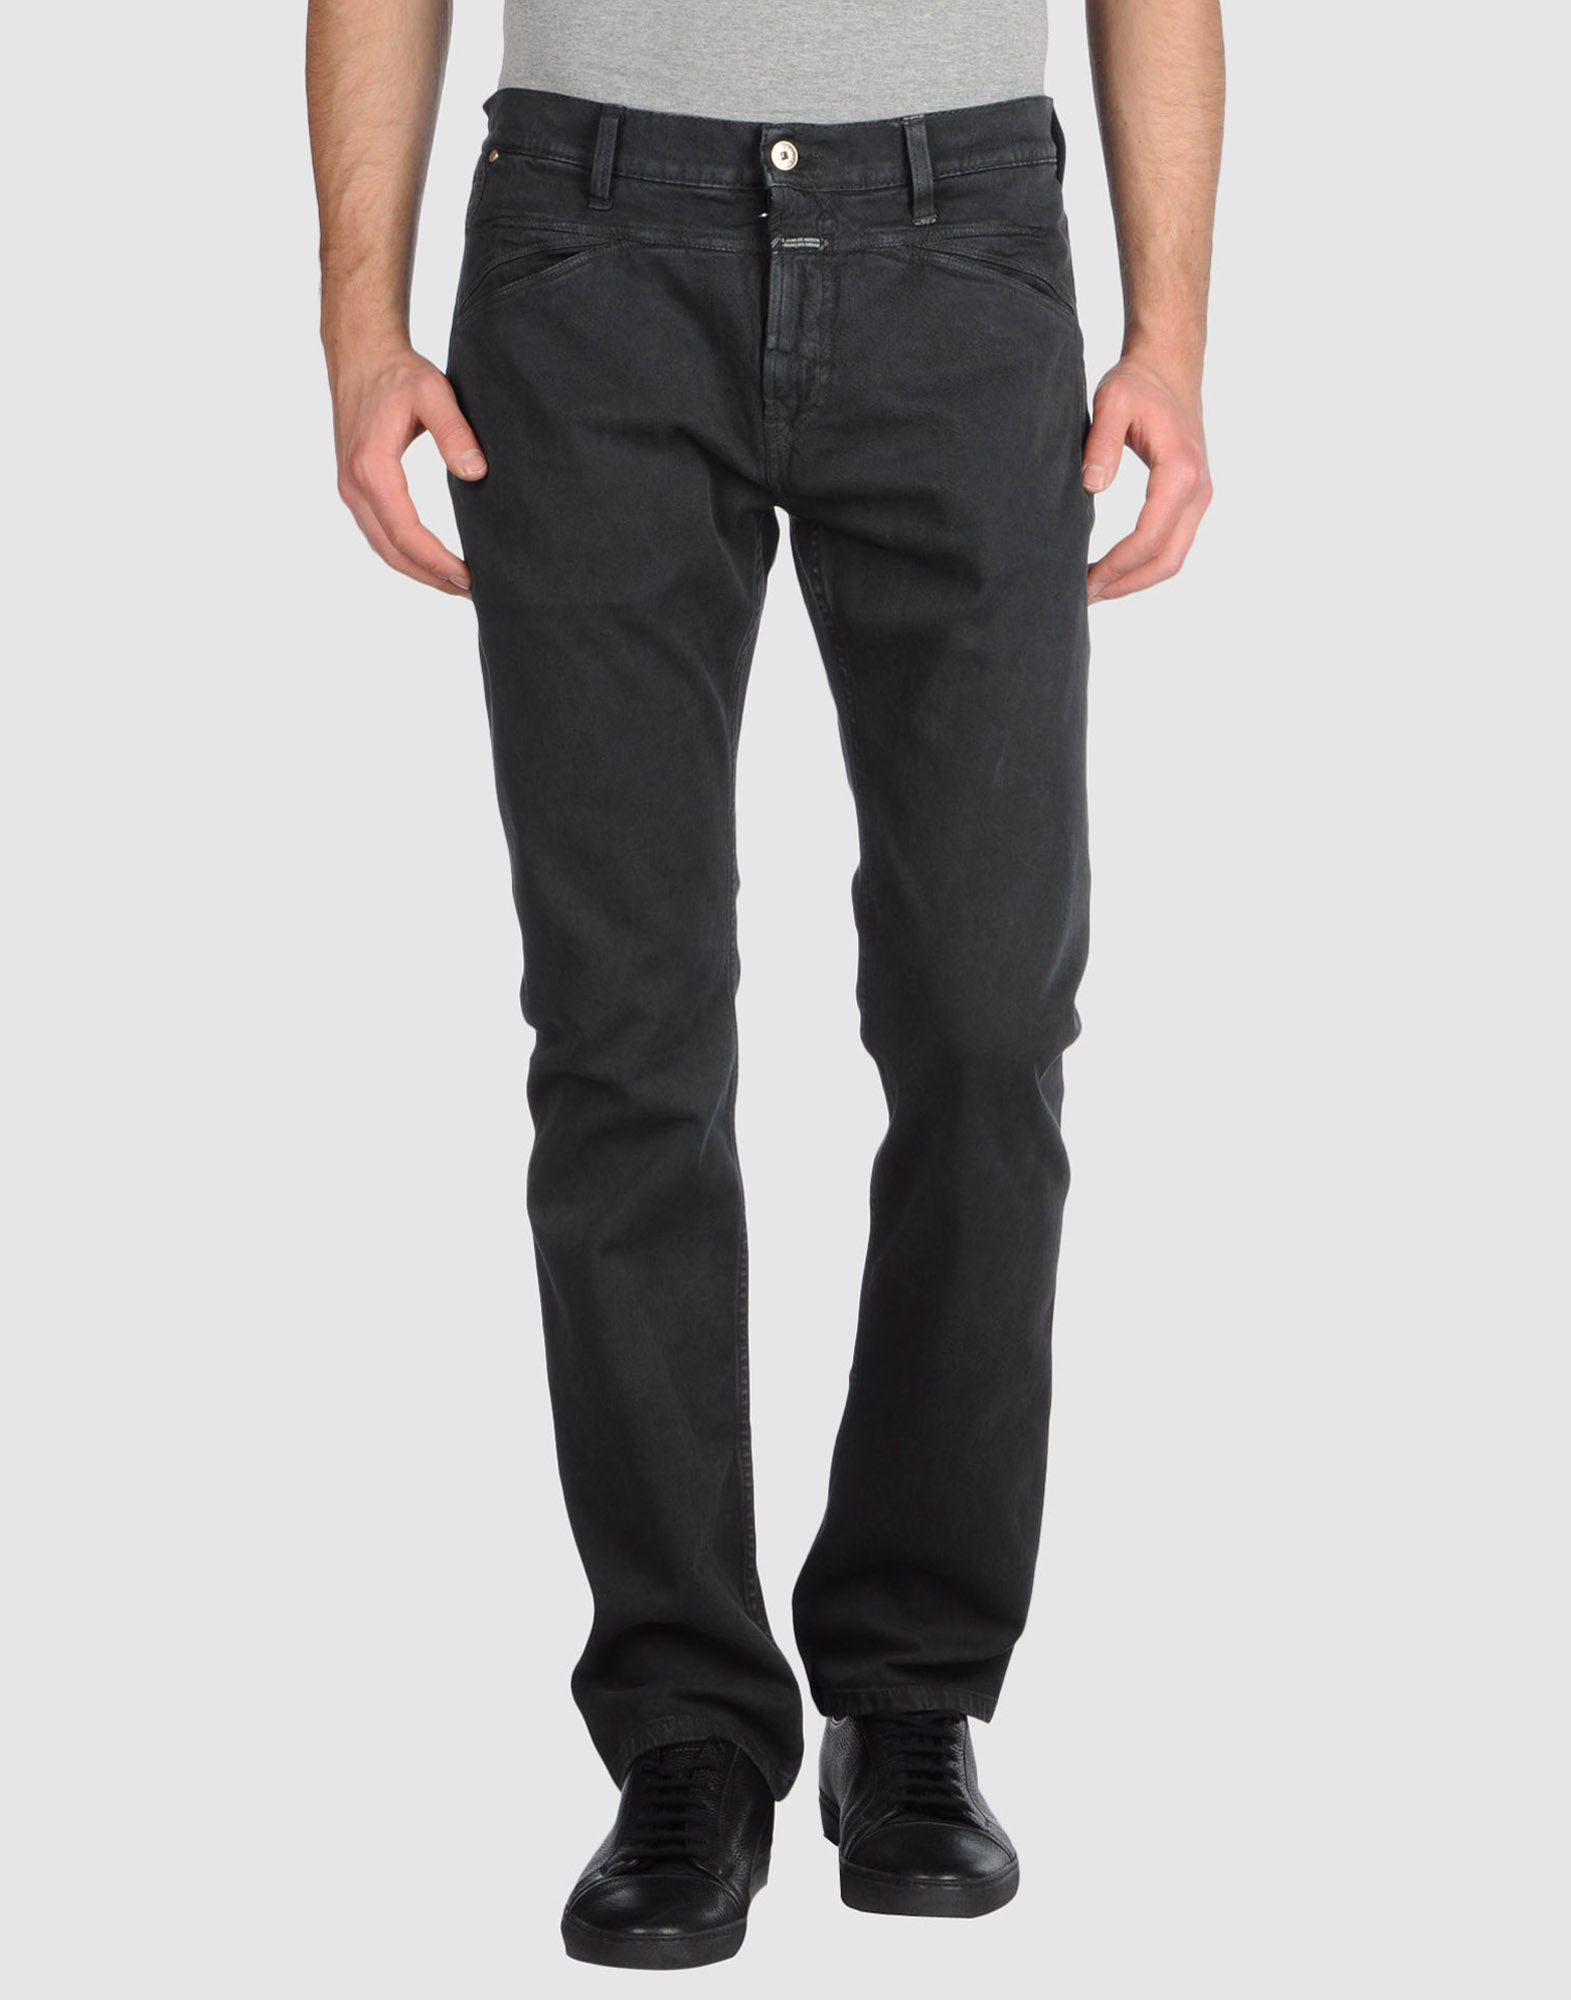 G Star Jeans Mens